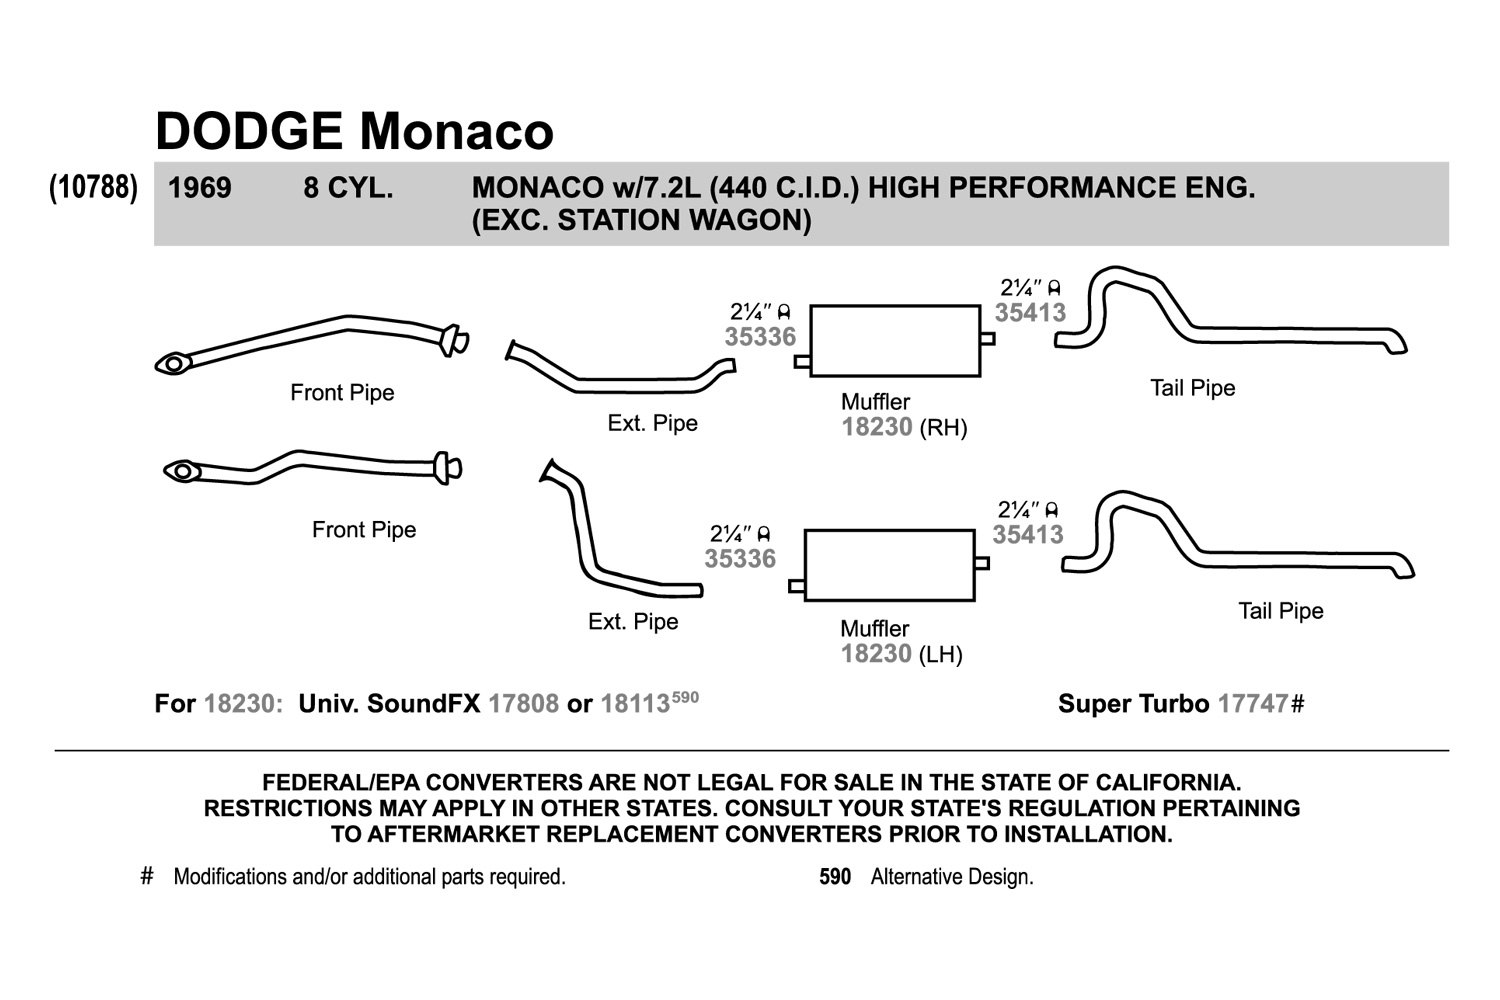 1994 Ford Thunderbird Wiring Schematic Library Diagram 1968 D100 Data Diagrams U2022 1966